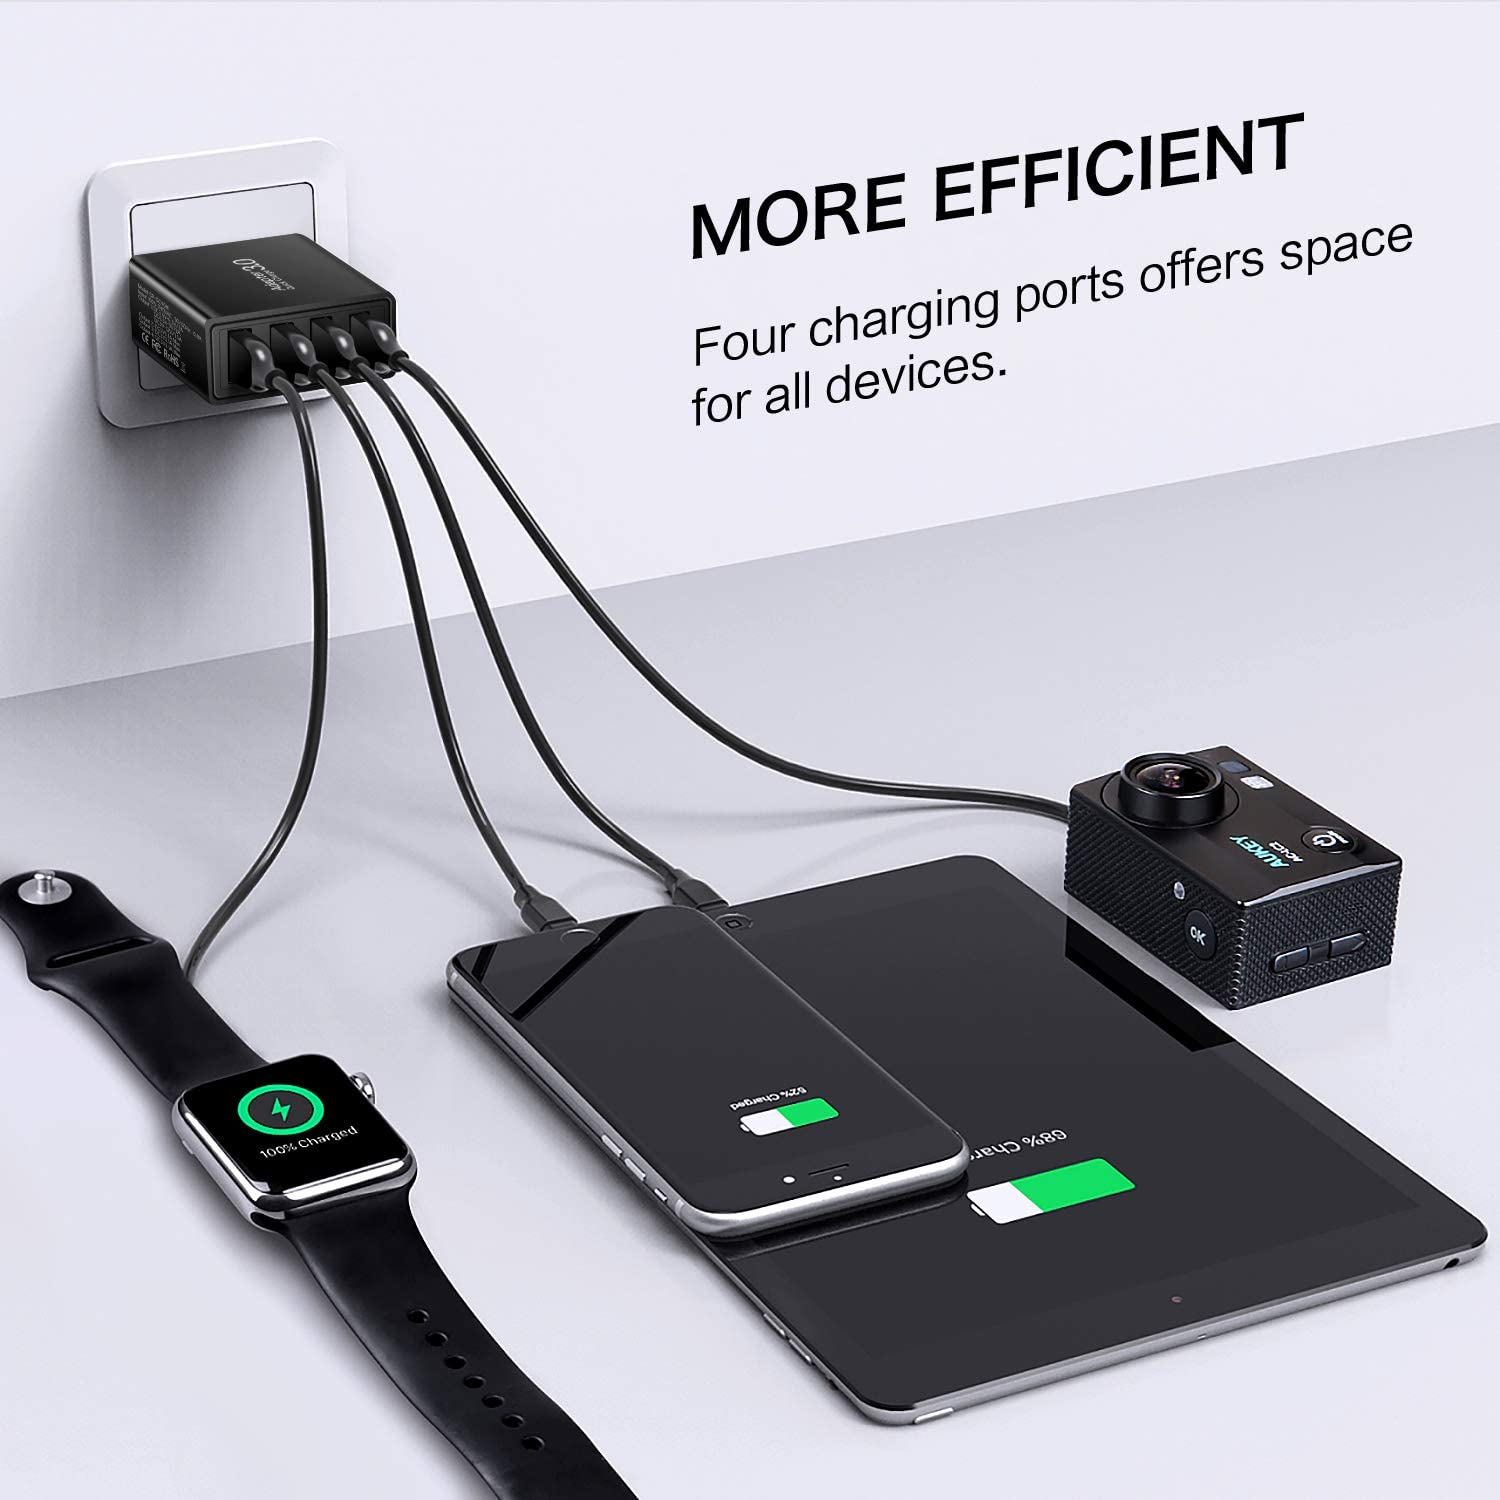 4-Port USB Plug for Galaxy S10+ S9+ Note 10+ Note 9+ Note 8 Boxeroo Fast Charge 3.0 Wall Charger 2Pack iPhone 11 Pro Max XS Max XR X 8 7 Plus LG G6 V30 HTC 10 USB Fast Charger